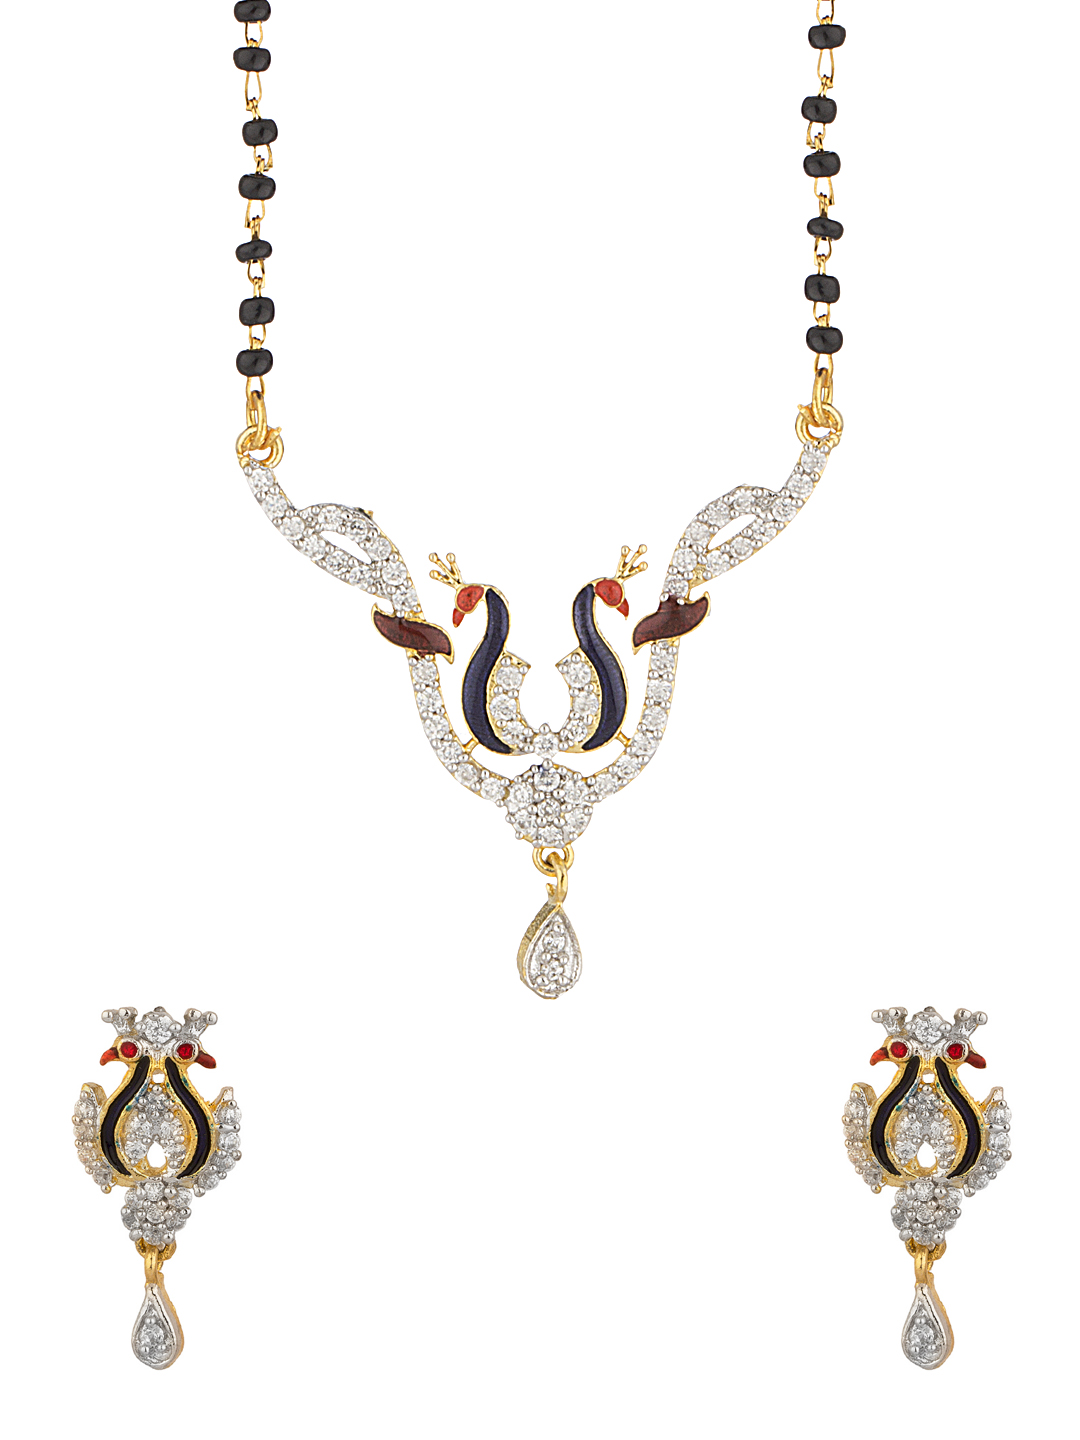 Voylla Gold-Toned & Black Mangalsutra & Earrings Set available at Myntra for Rs.30